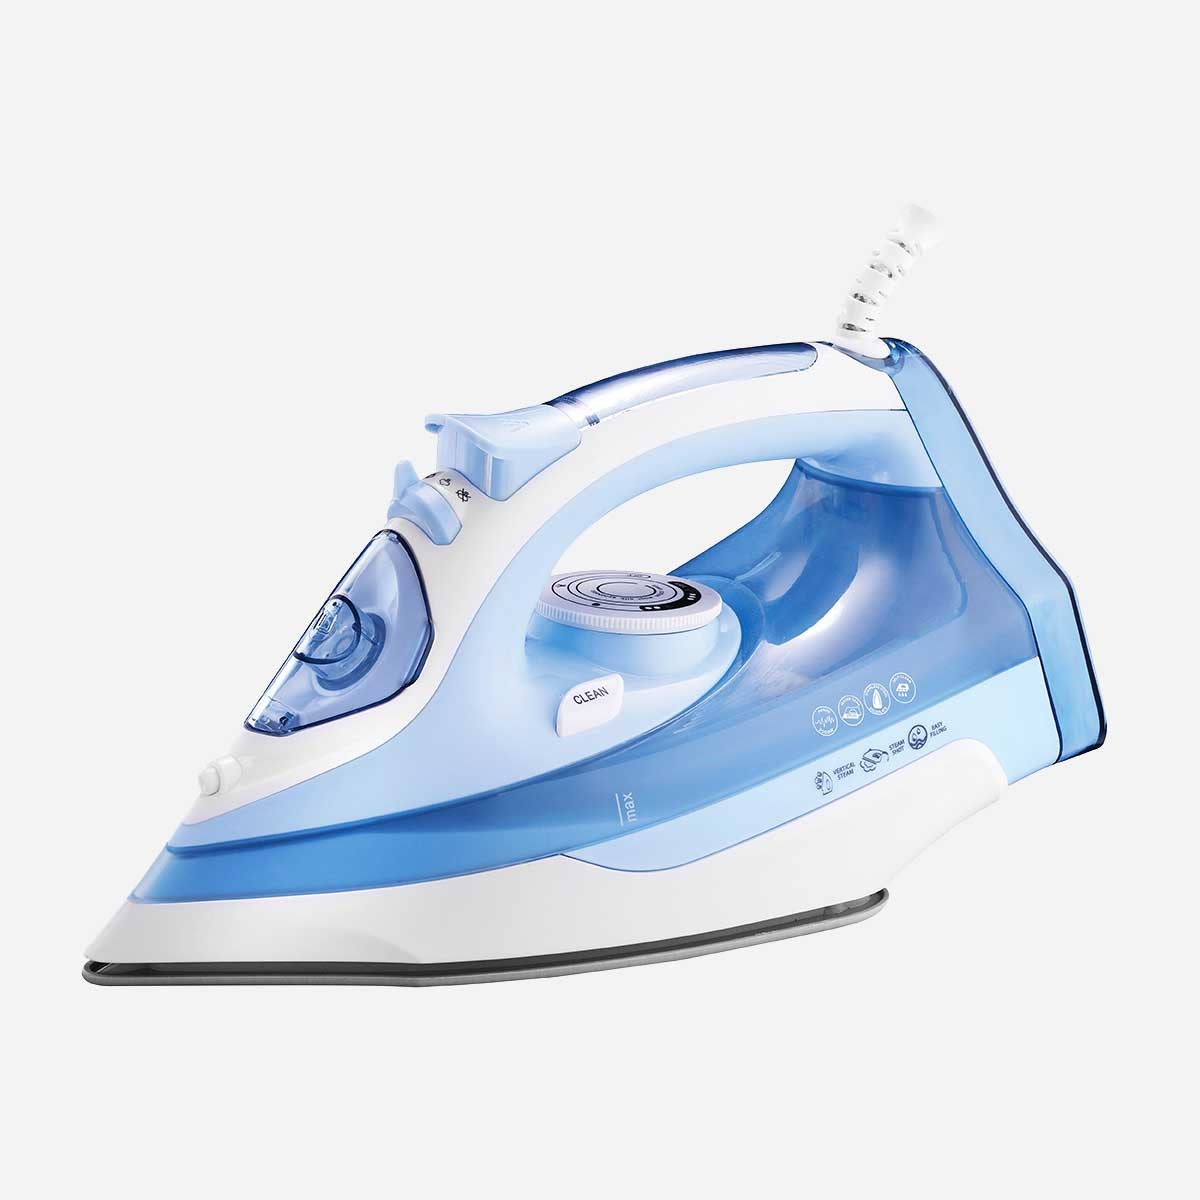 Shop now for Ironing